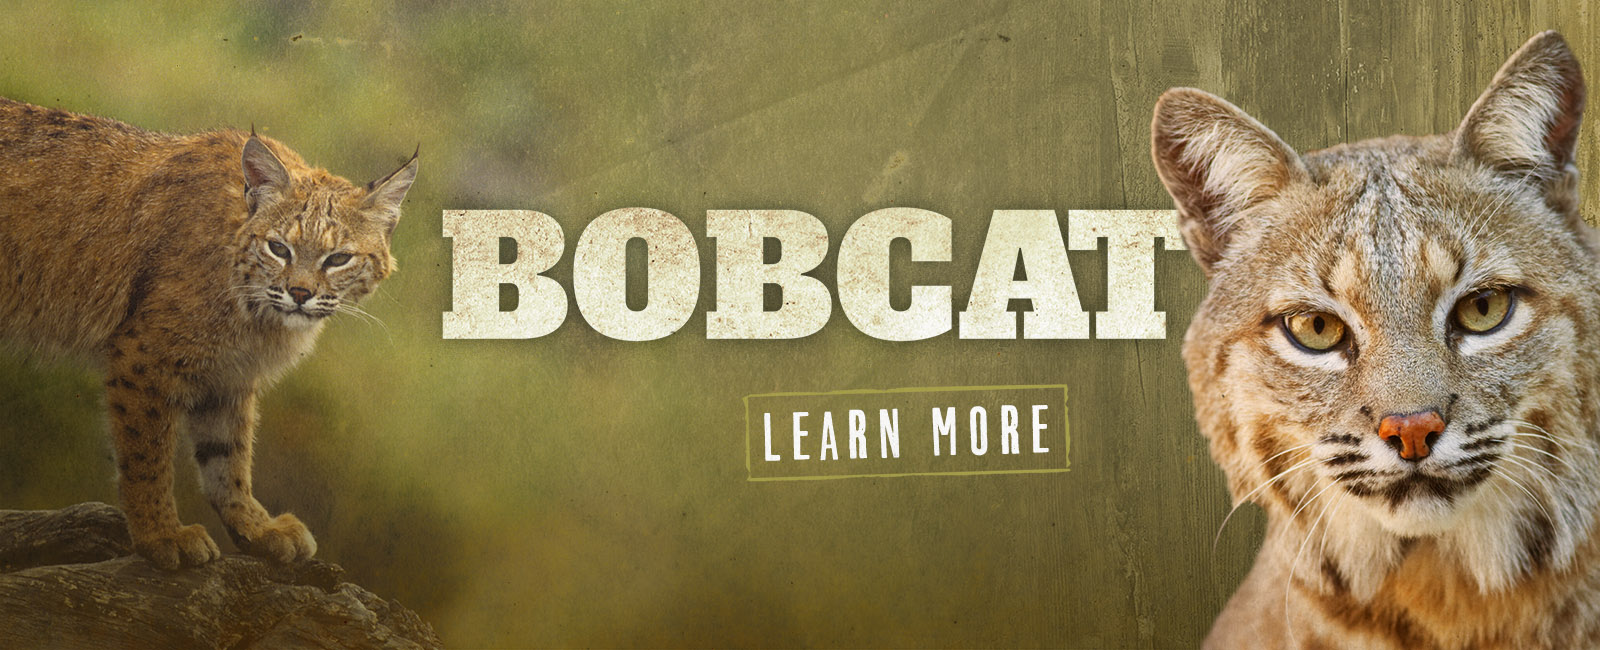 Learn more about Bobcats